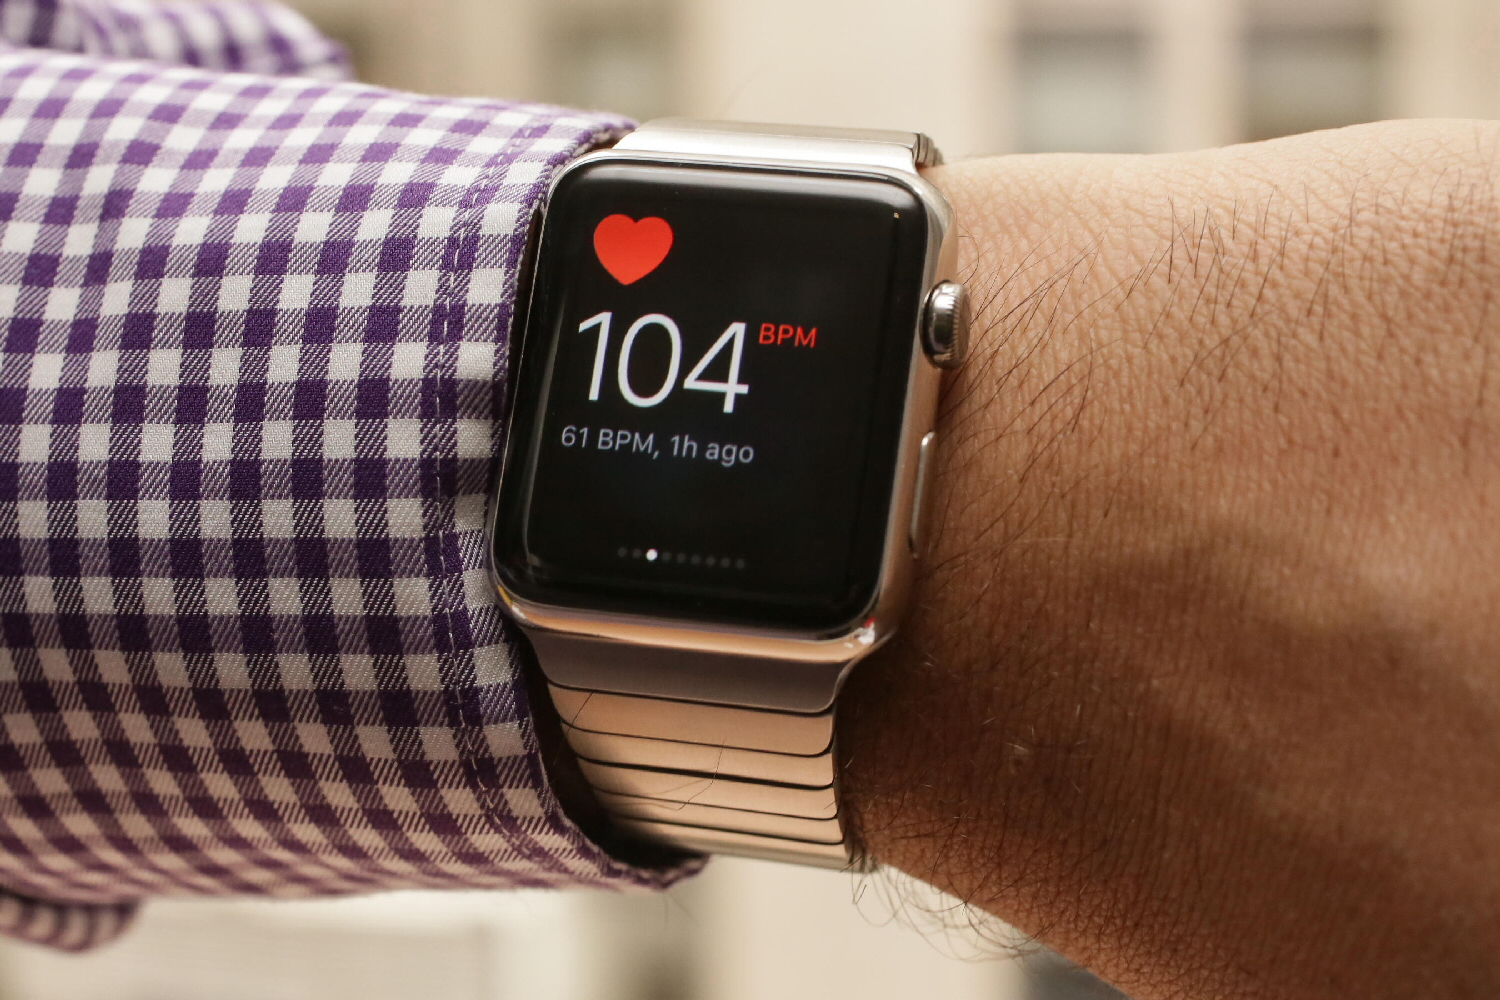 Test For Heart Attack >> This man suffered a serious heart attack, and his Apple Watch saved his life